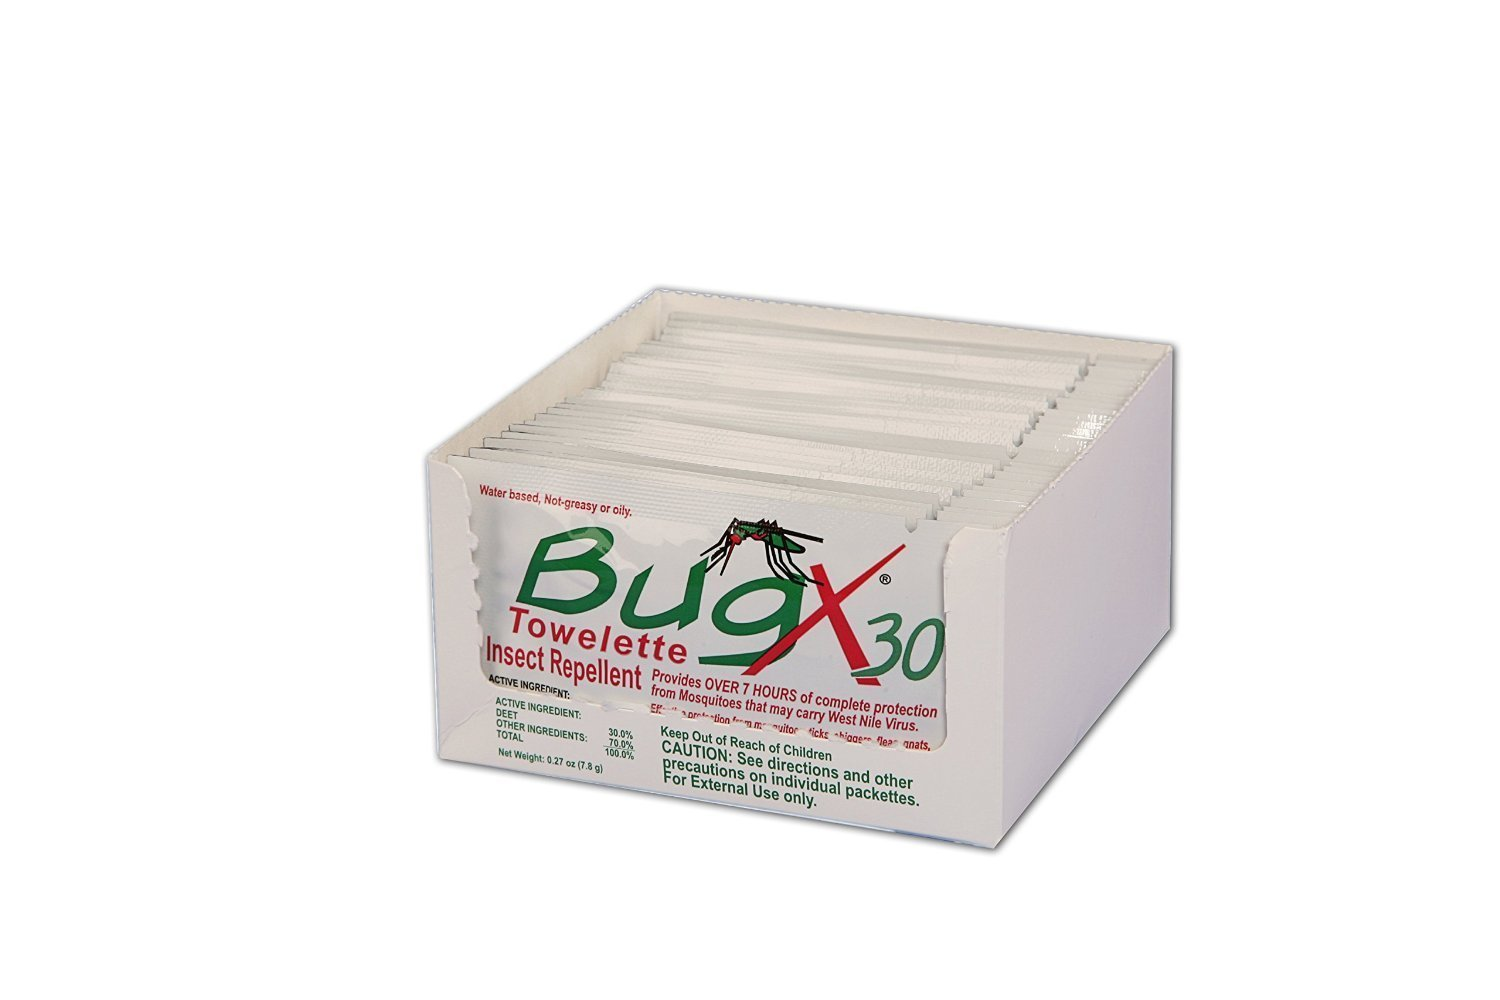 Bug X Insect Repellent Towelette Foil Pack, 25 Per Pack